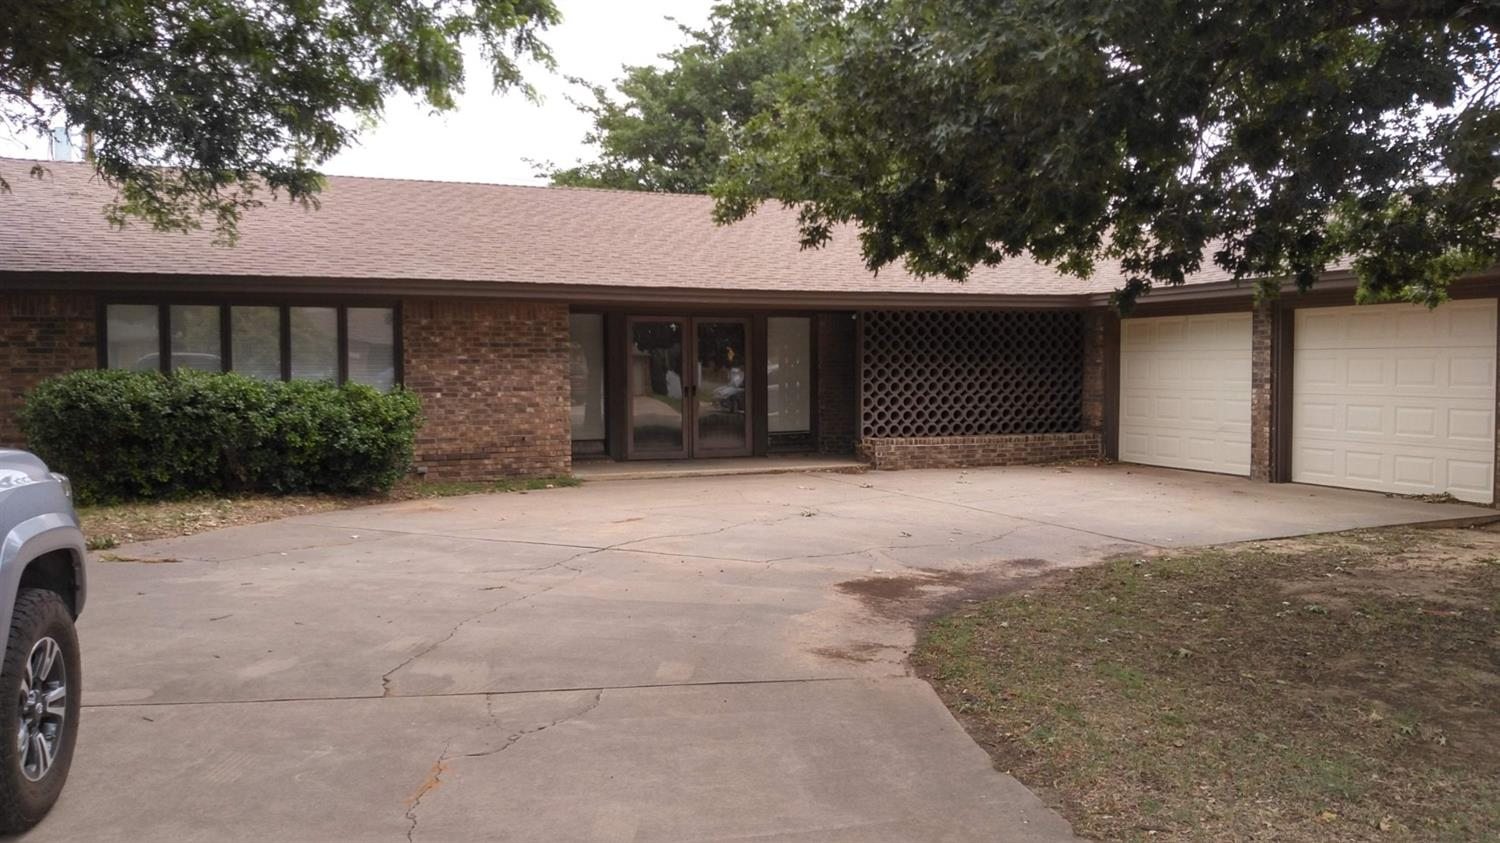 3402 74th Street, Lubbock in Lubbock County, TX 79423 Home for Sale